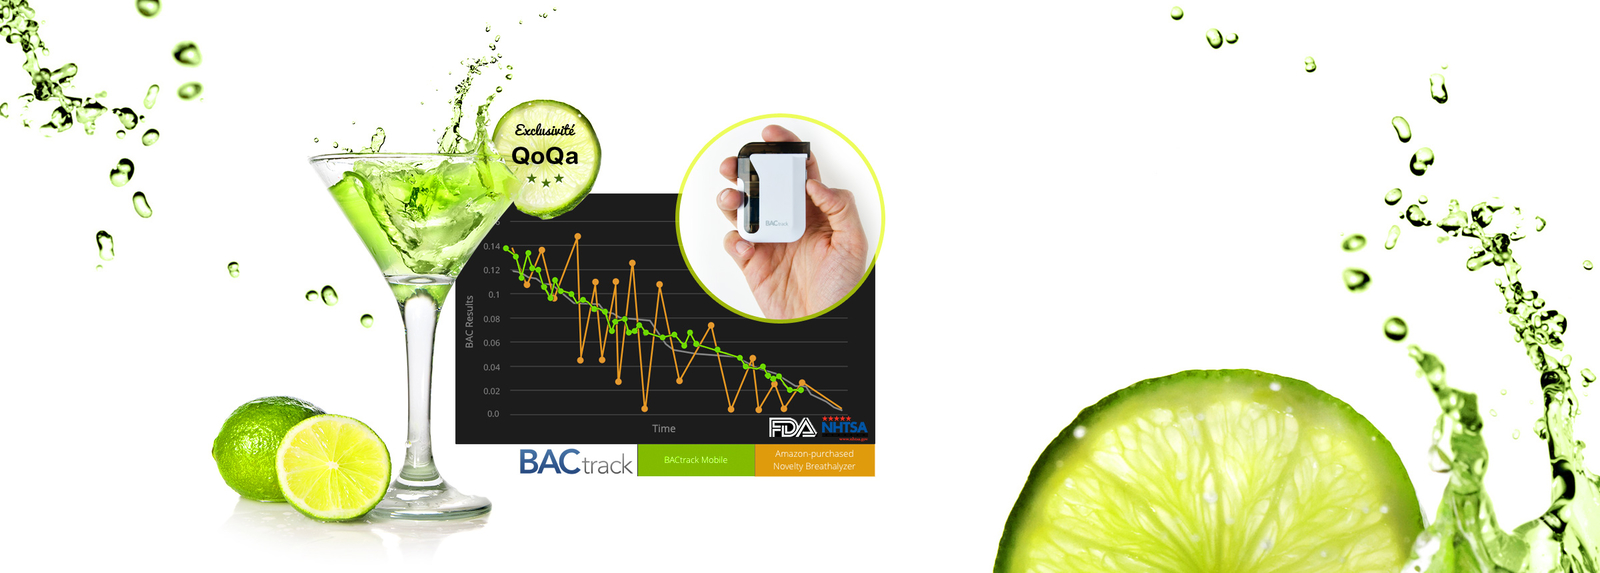 Bactrack mobile alcootest bluetooth professionnel - Mobile ch perpignan fr ...